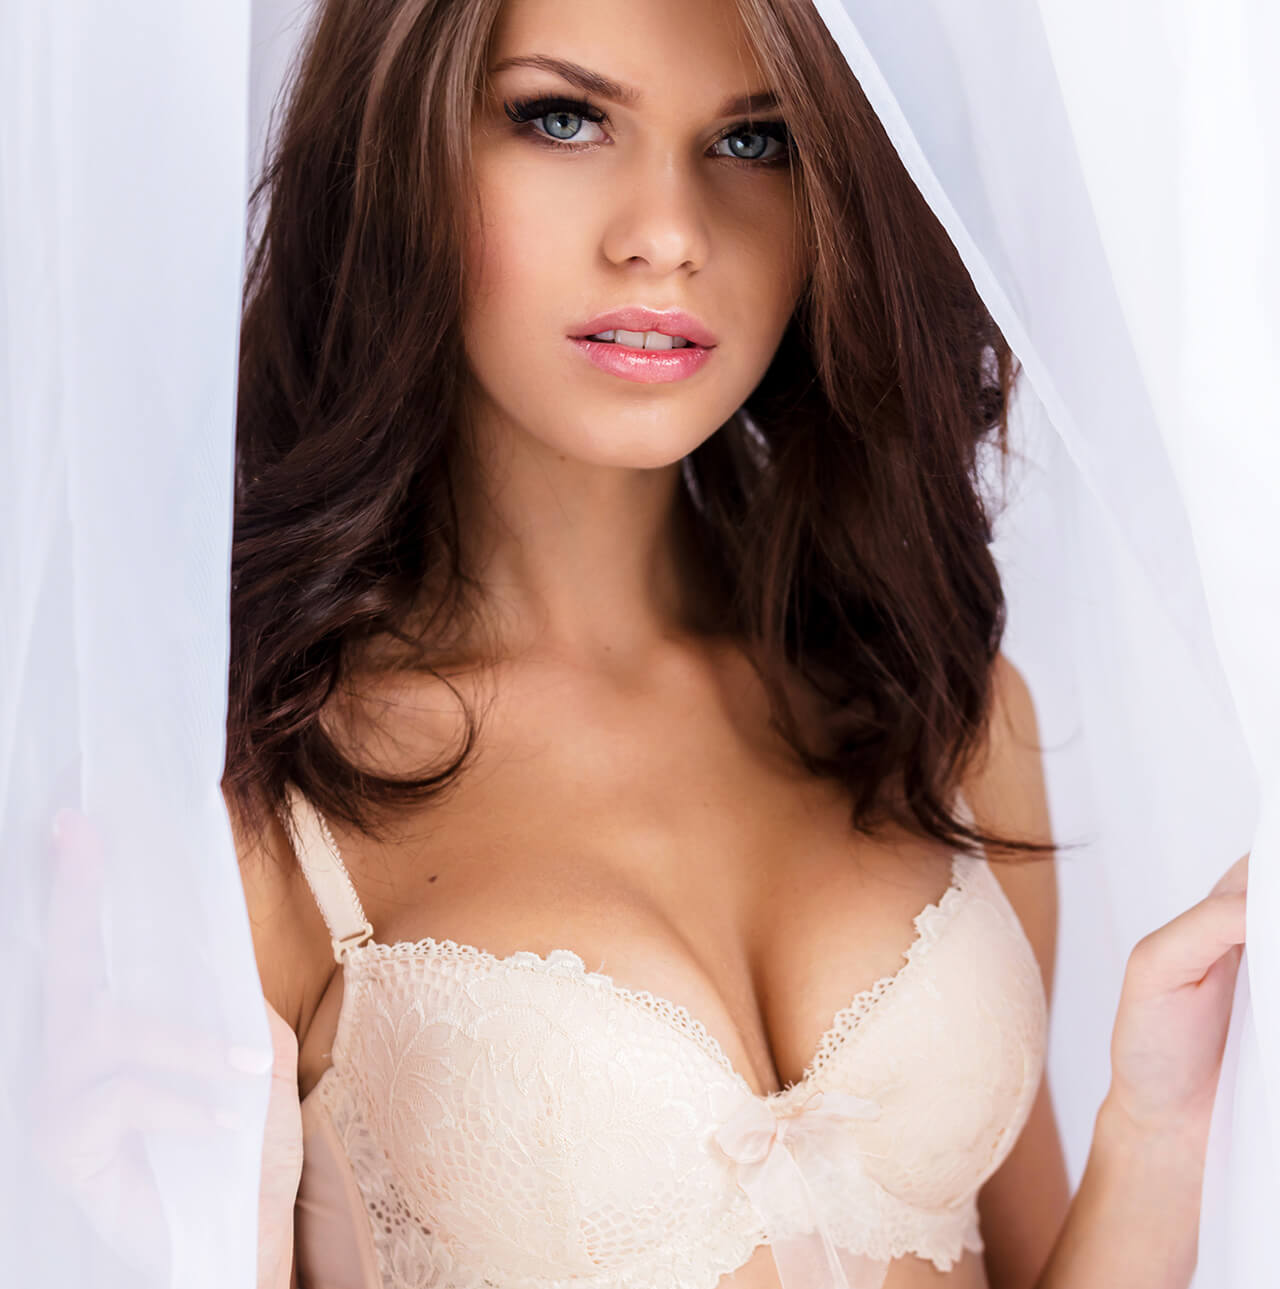 Best Breast Augmentation in Chicago